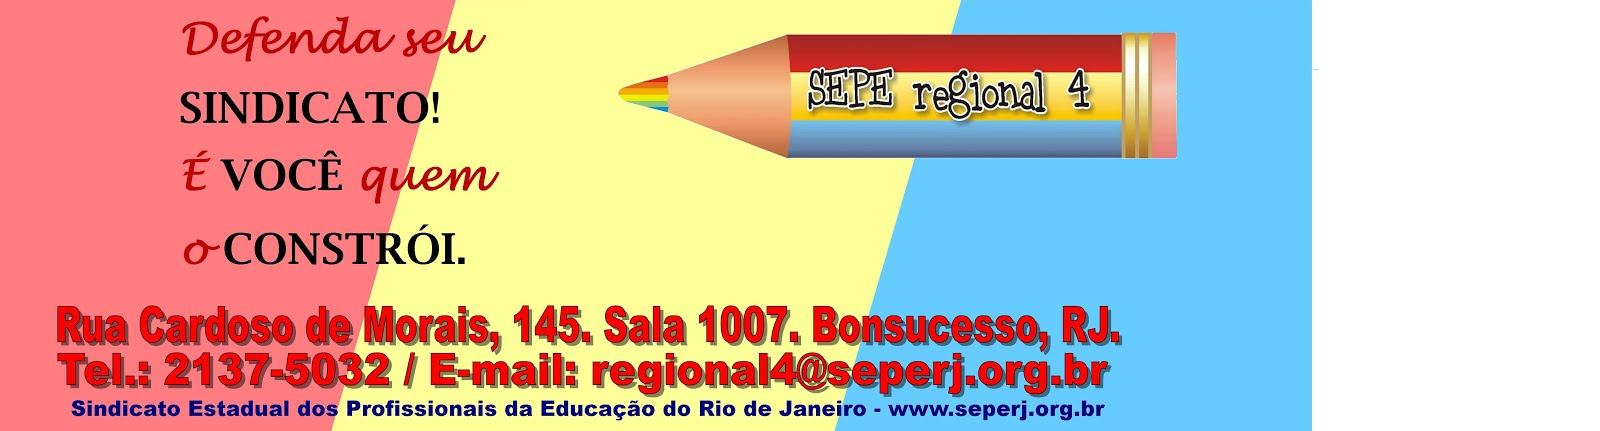 SEPE REGIONAL IV